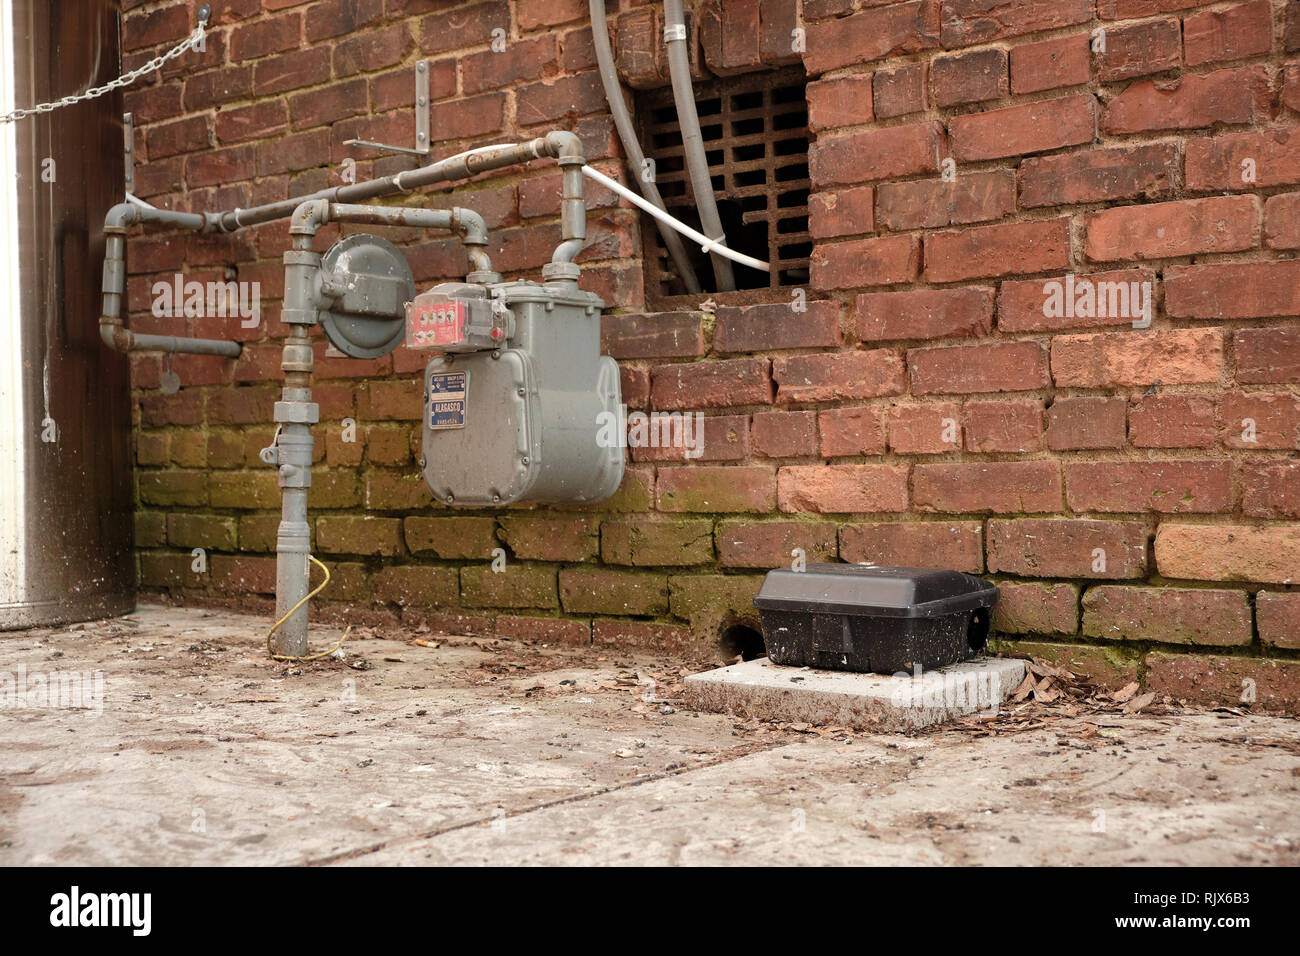 Large black rat trap box or mouse trap box next to a gas meter in a city or urban alley way in Montgomery Alabama, USA. - Stock Image